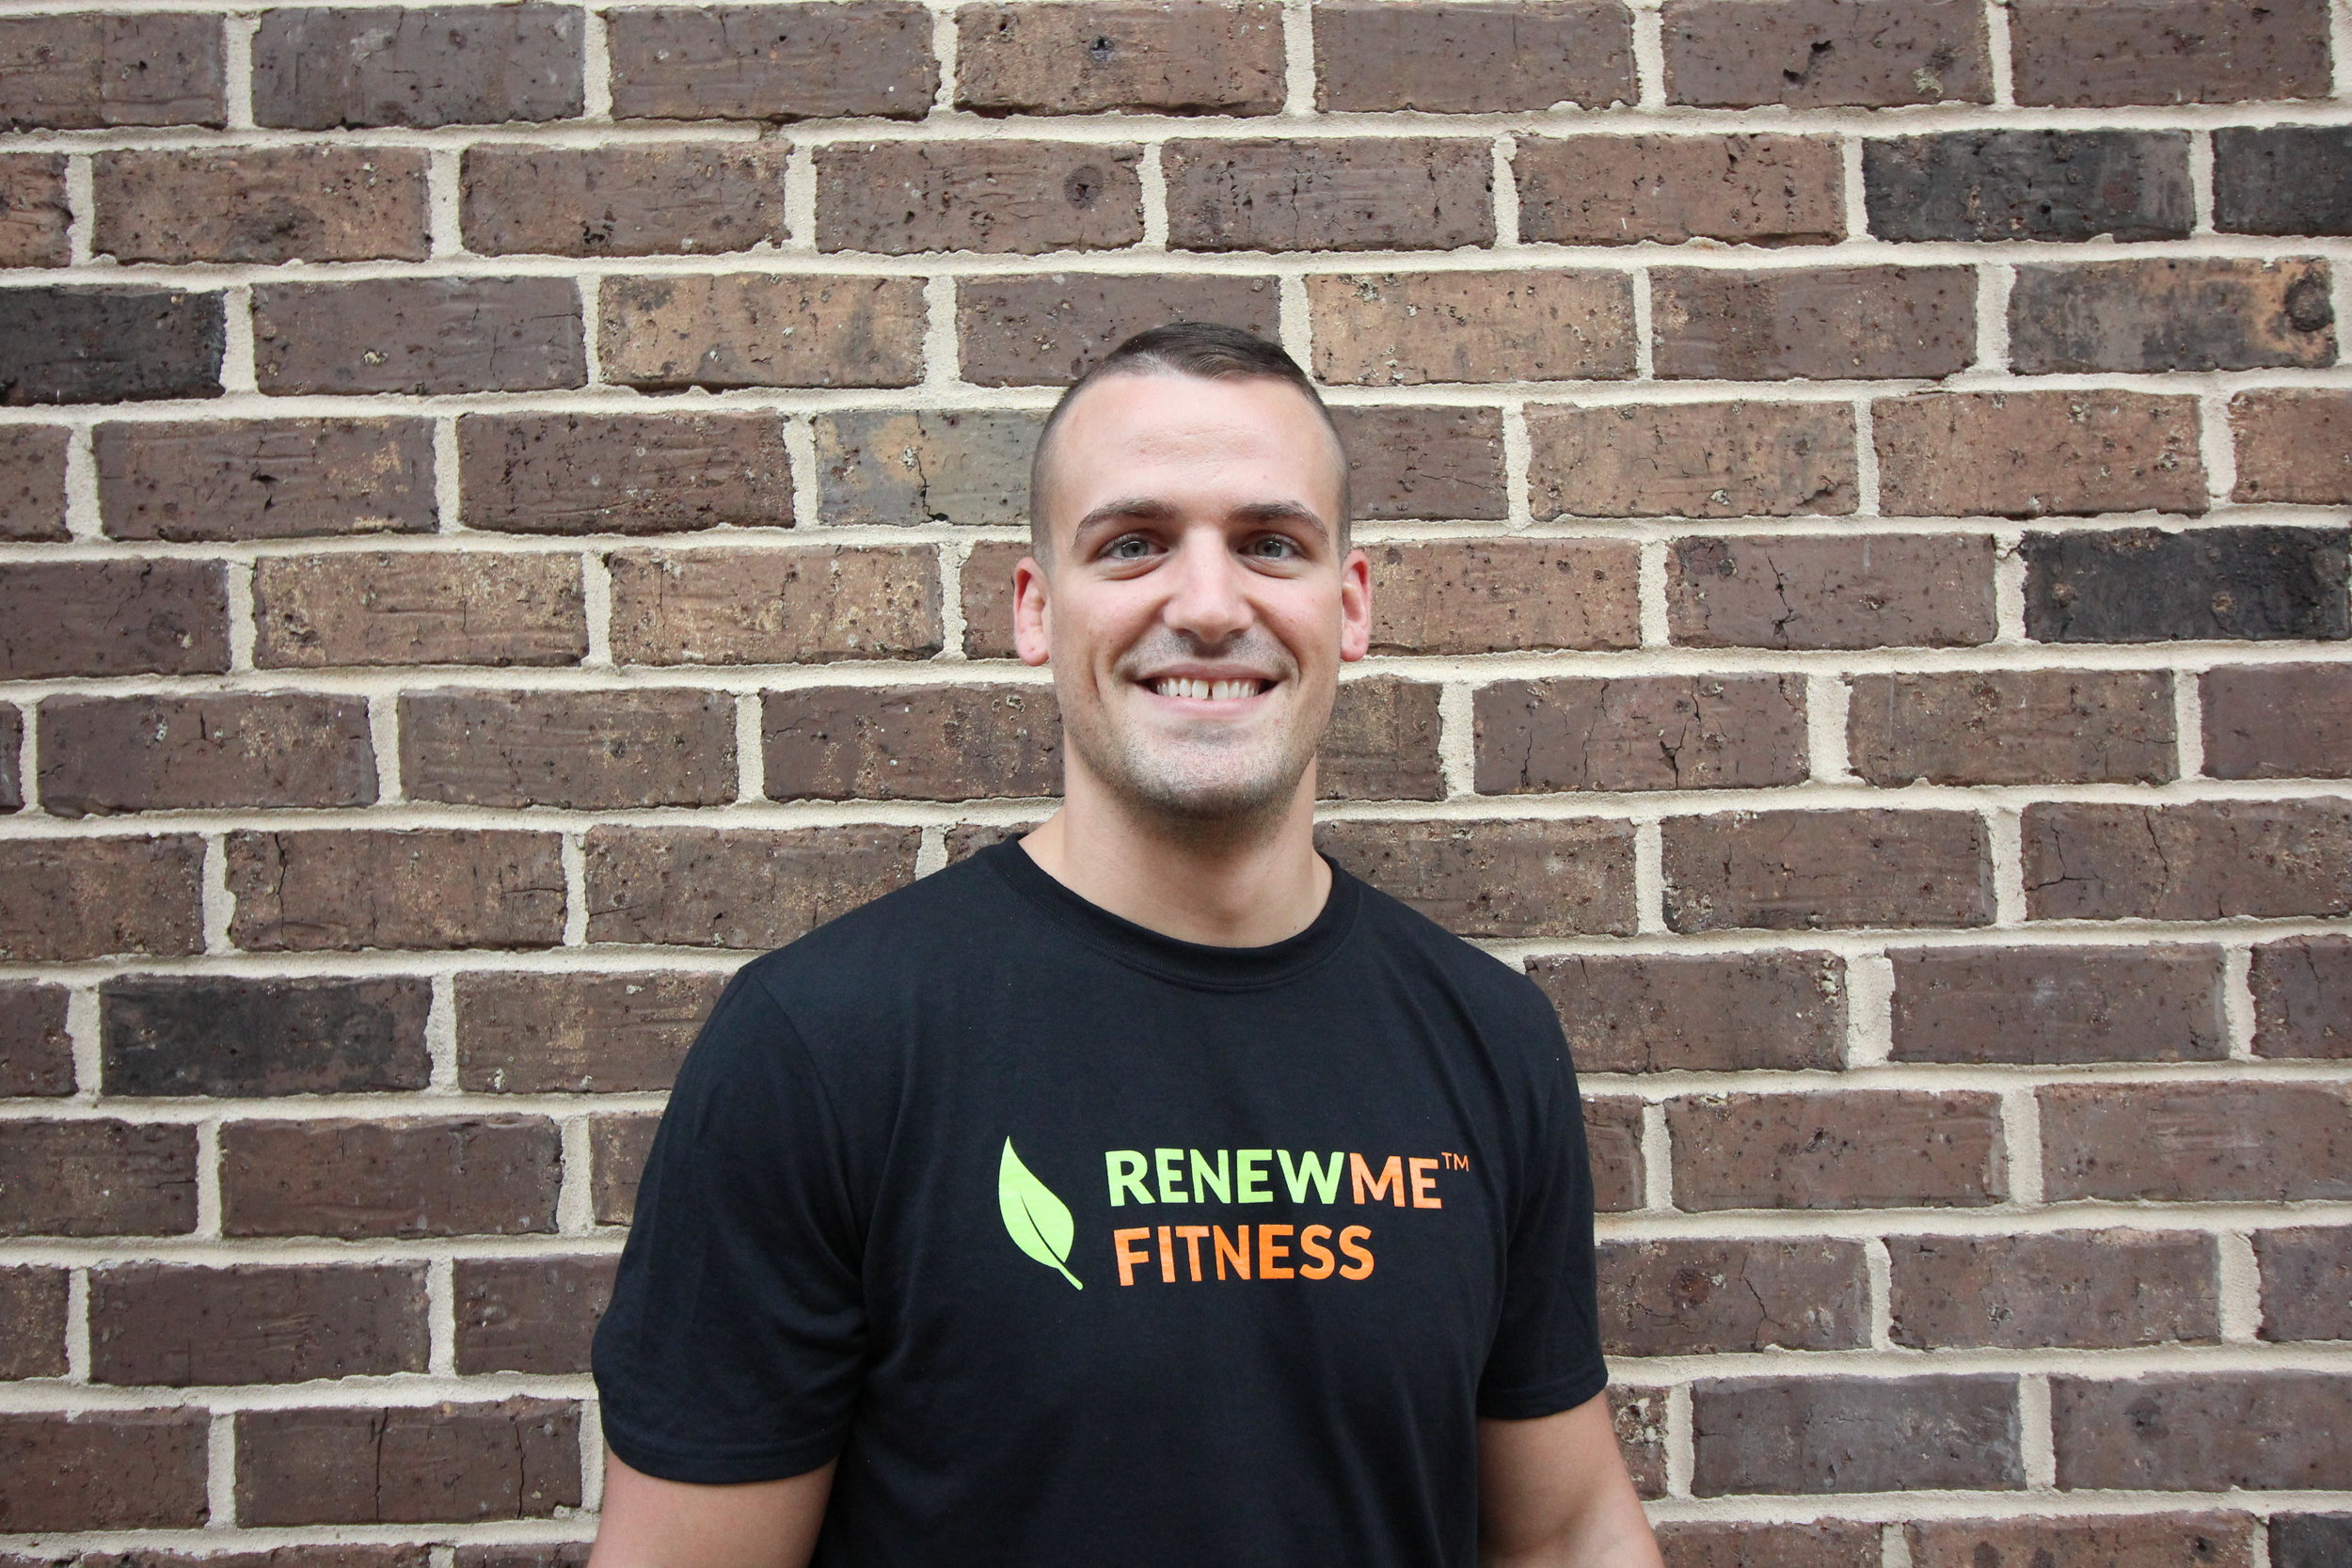 Dr. Dan Reed, RenewMe Fitness personal trainer